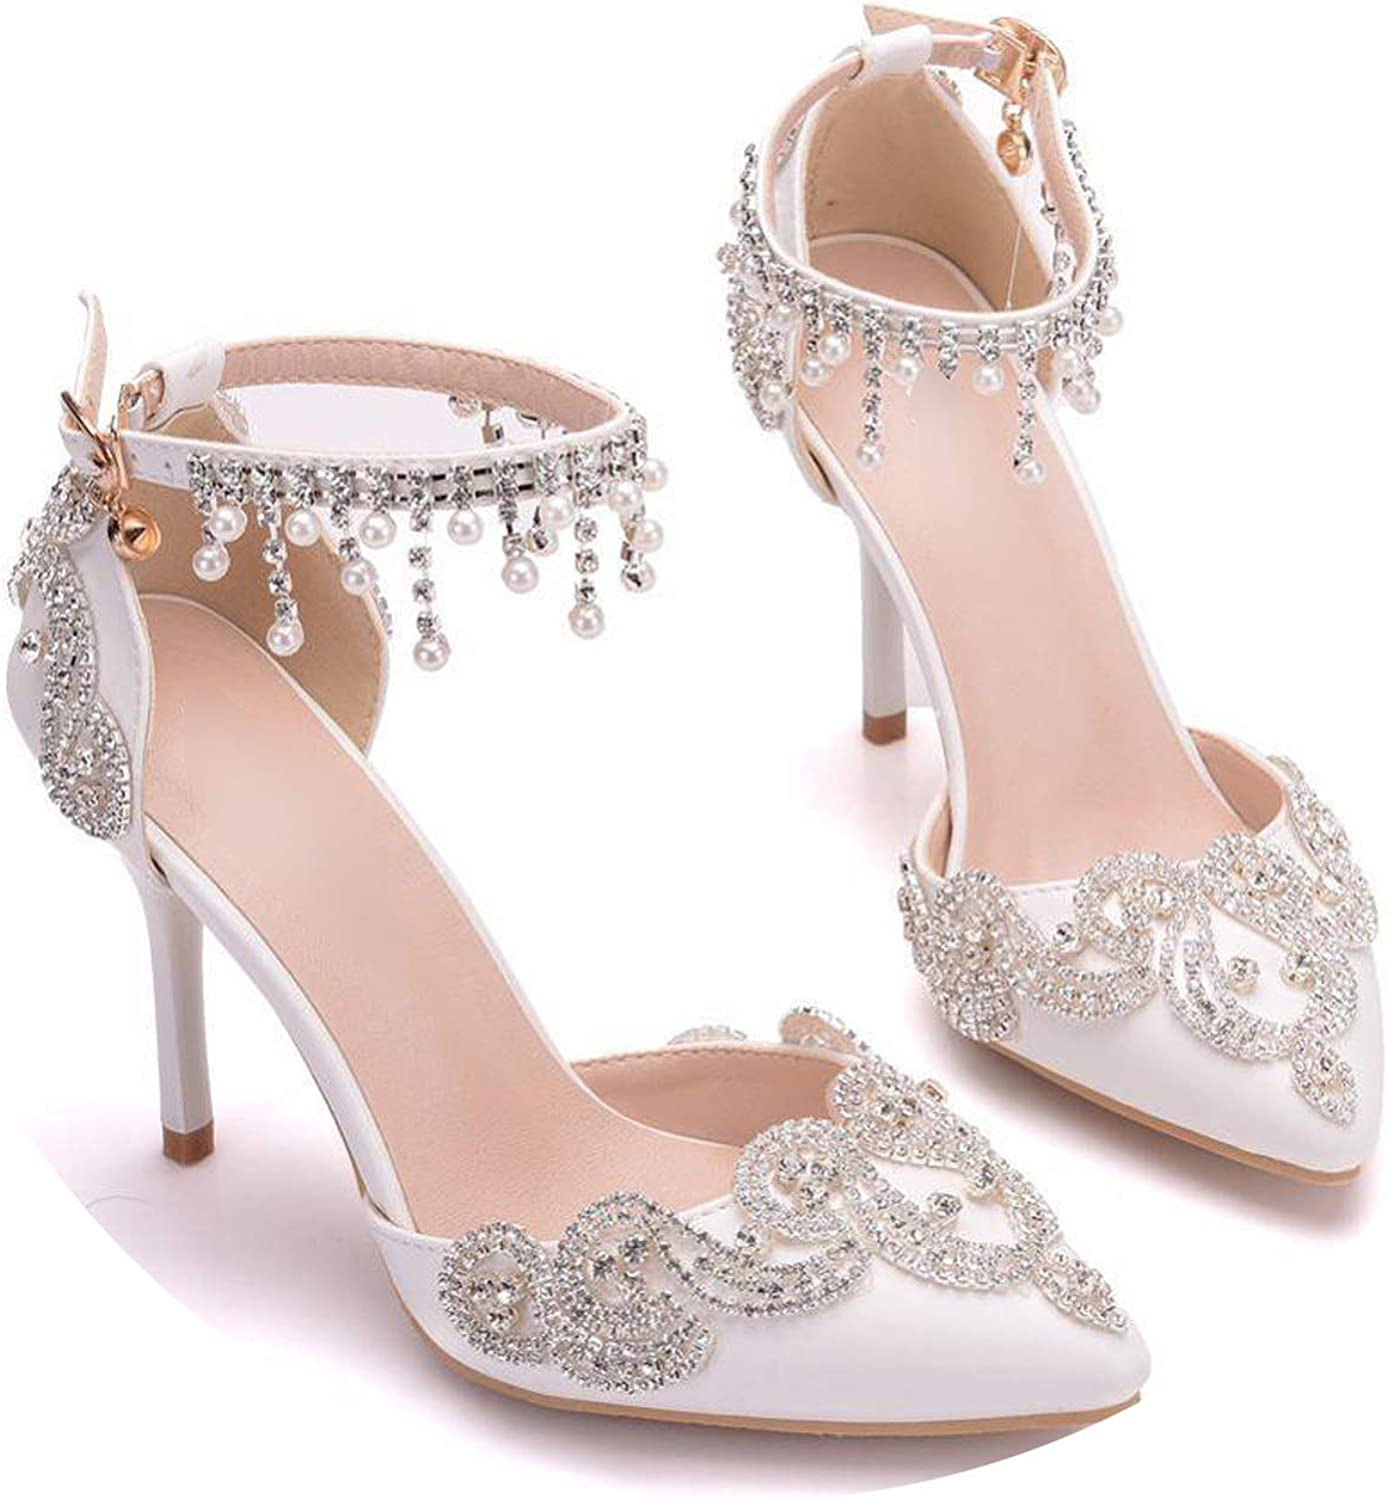 Sunny Doll 2019 Women High Heels Pumps Crystal Pearl White Wedding shoes Cutout Tassel Ankle Strap Ladies shoes